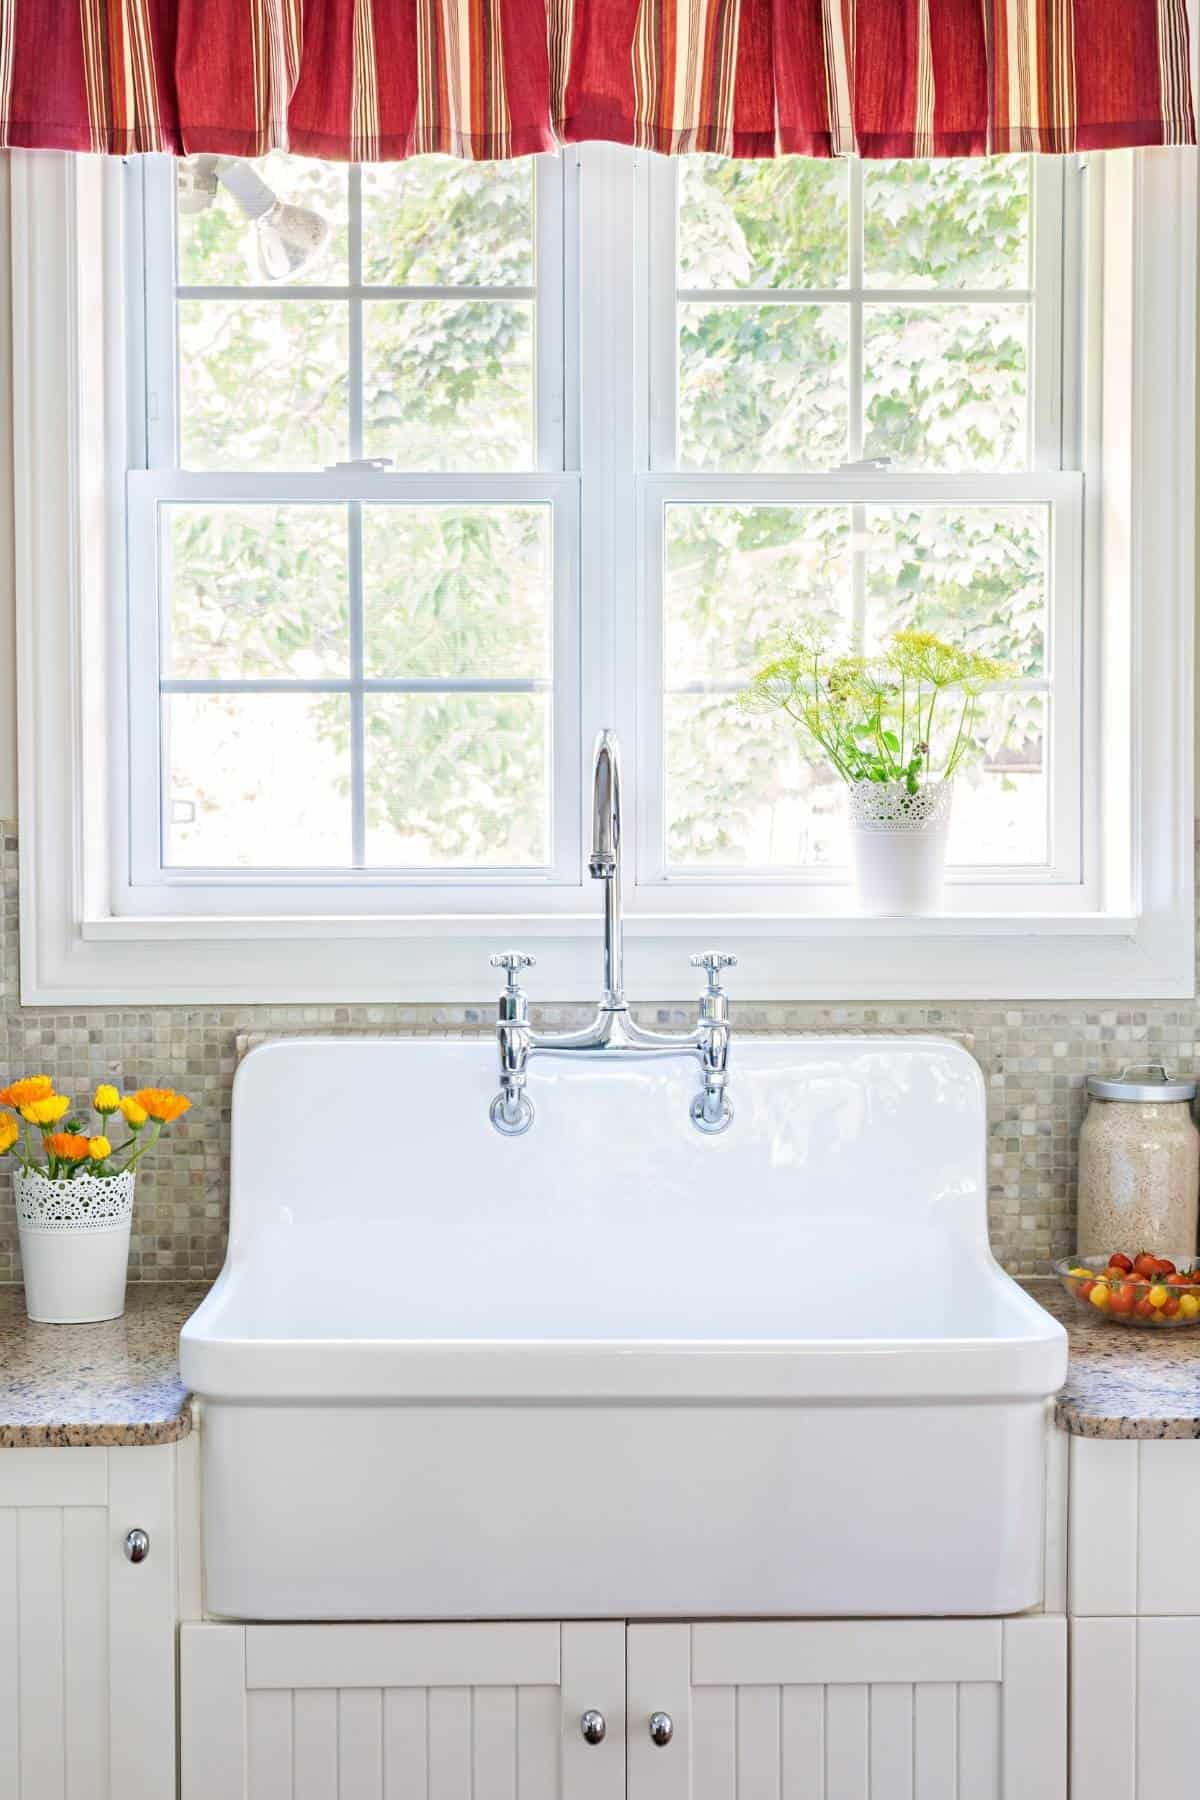 clean country style kitchen with farmhouse sink